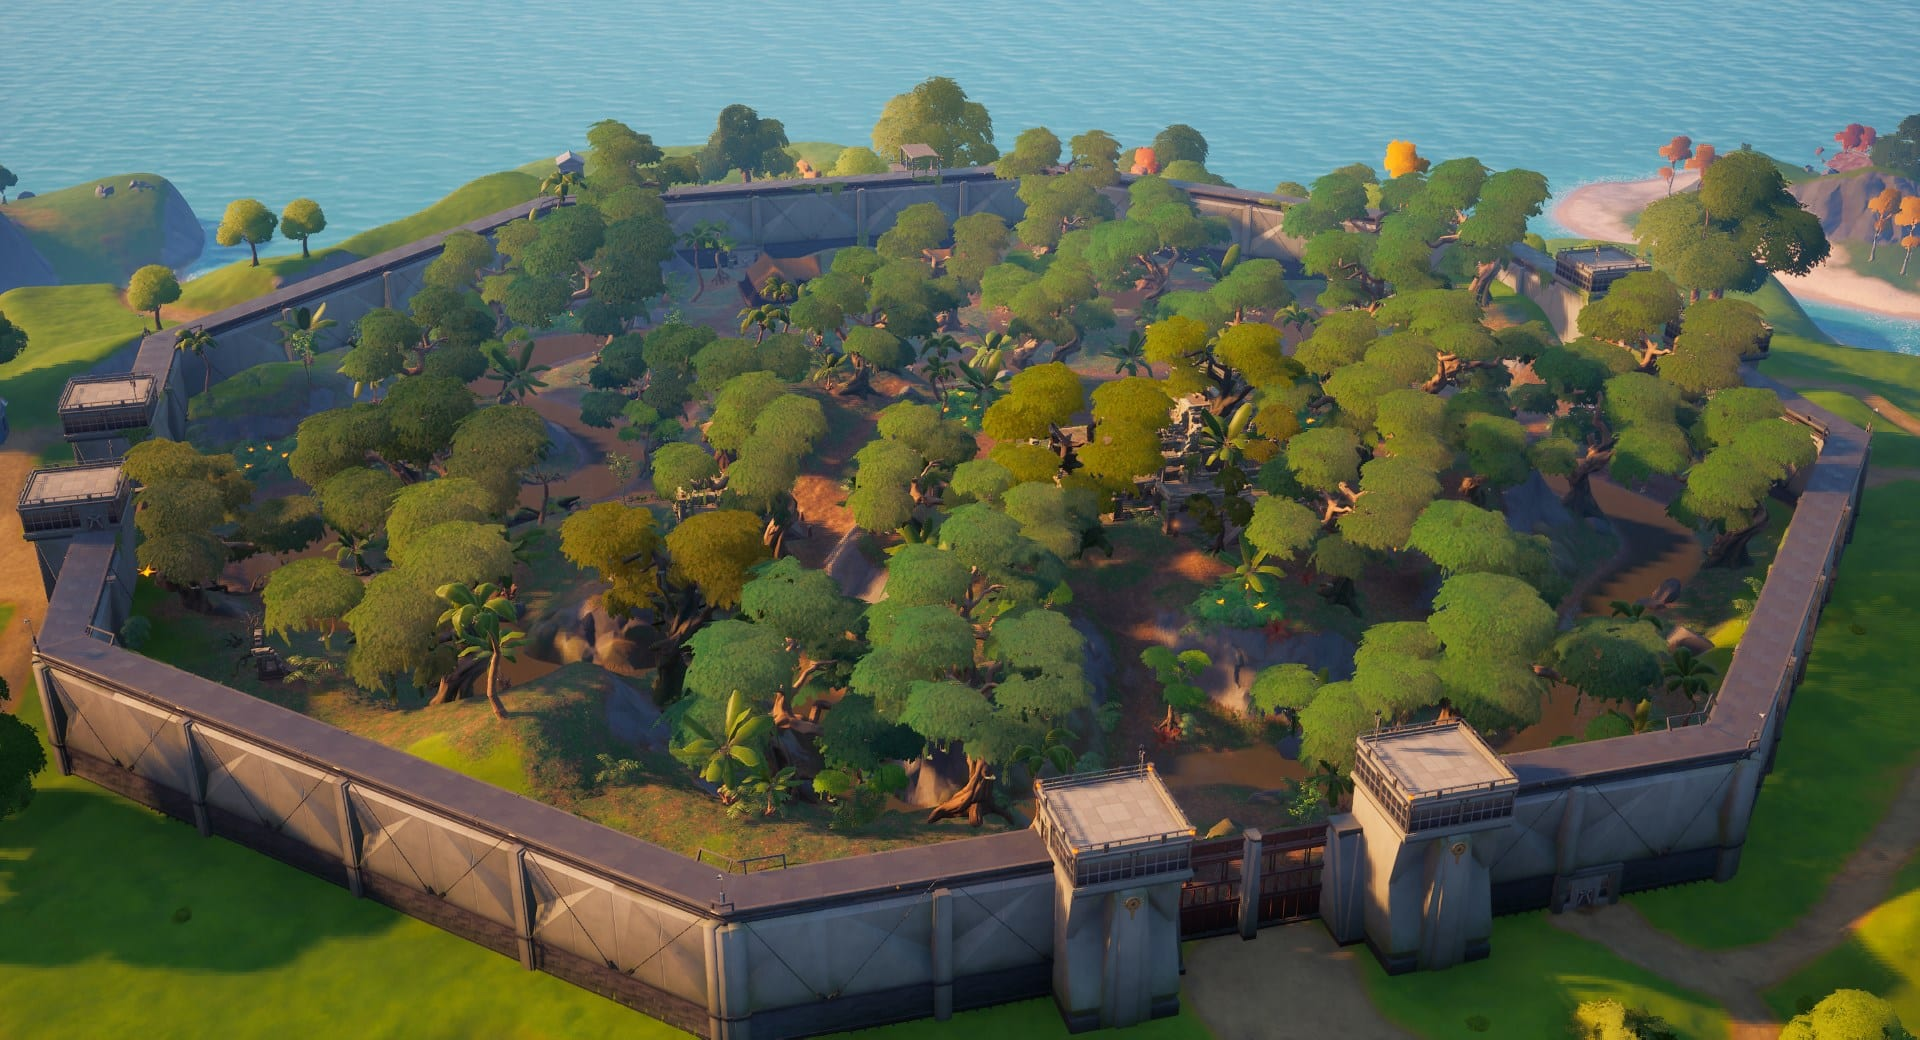 Stealthy Stronghold in Fortnite Season 5.